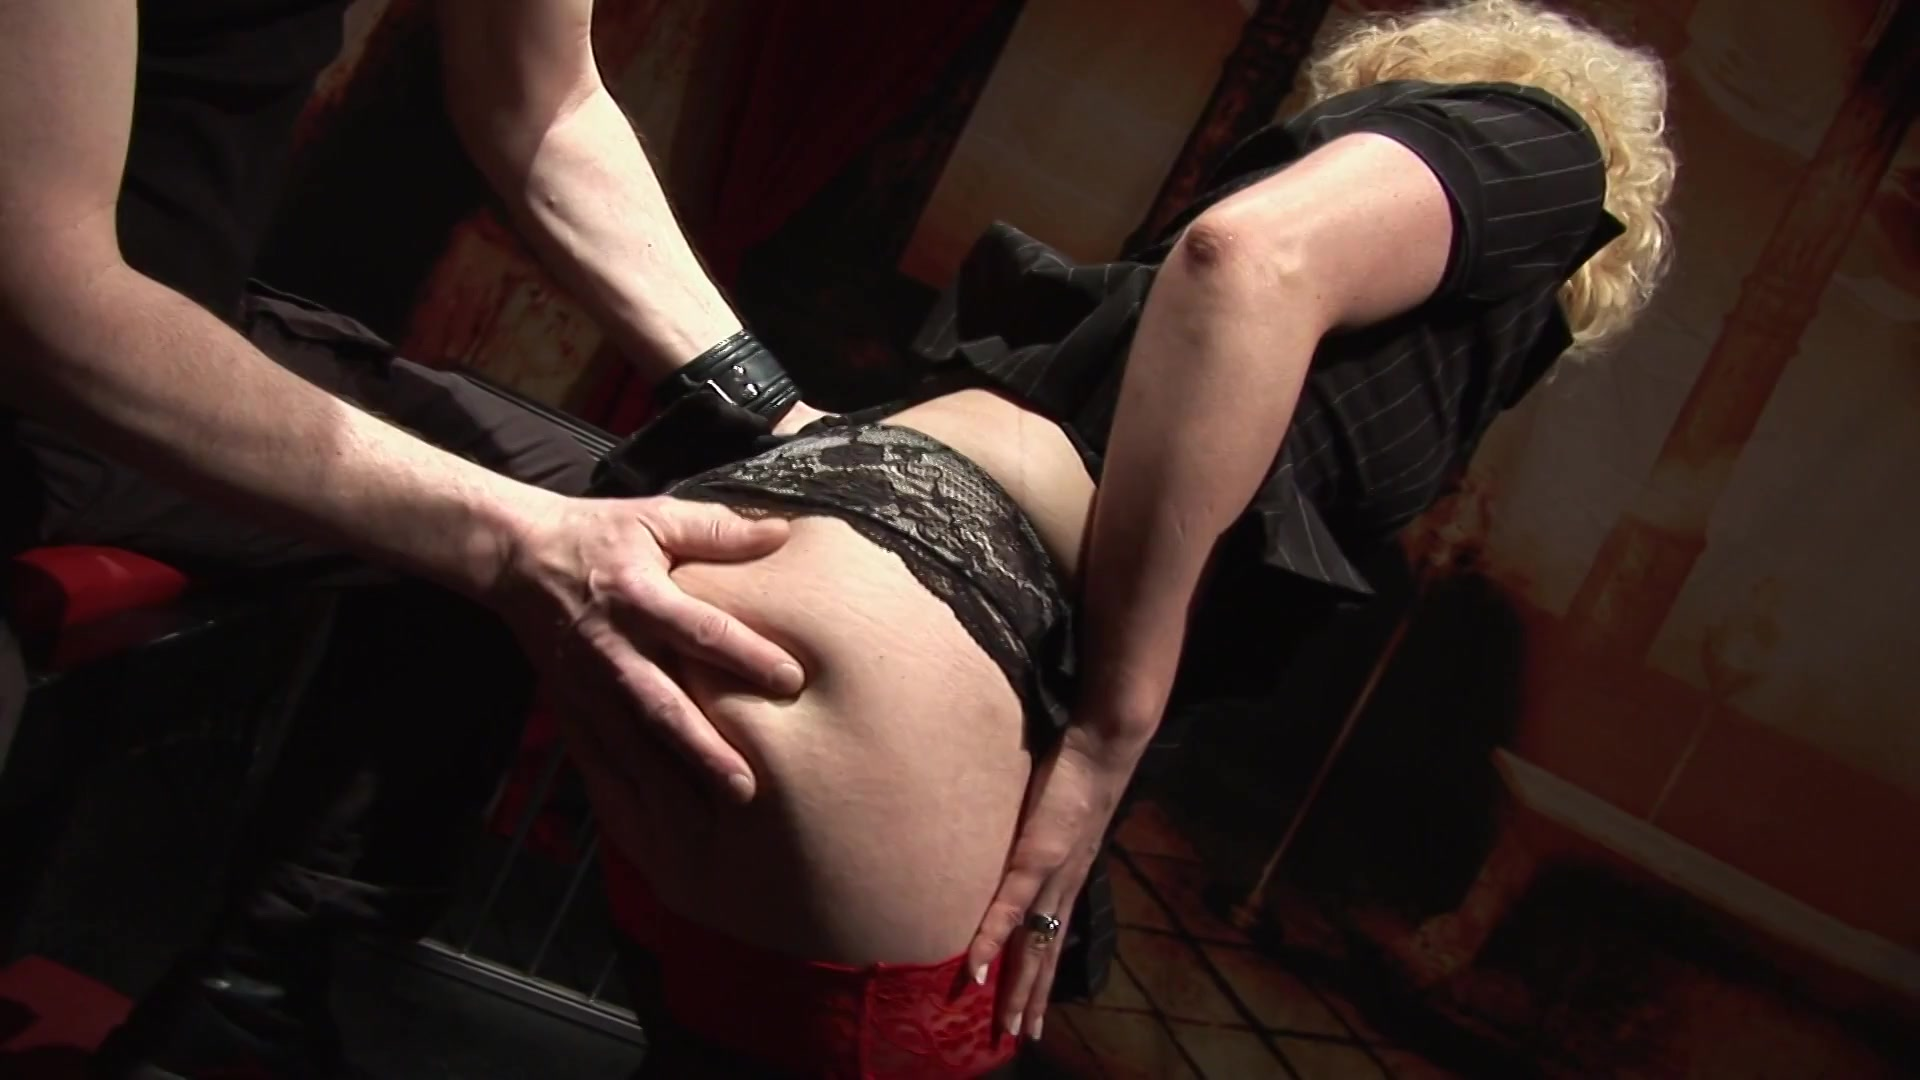 MASTER-SESSIONS - Master Dayhan & Lilith F